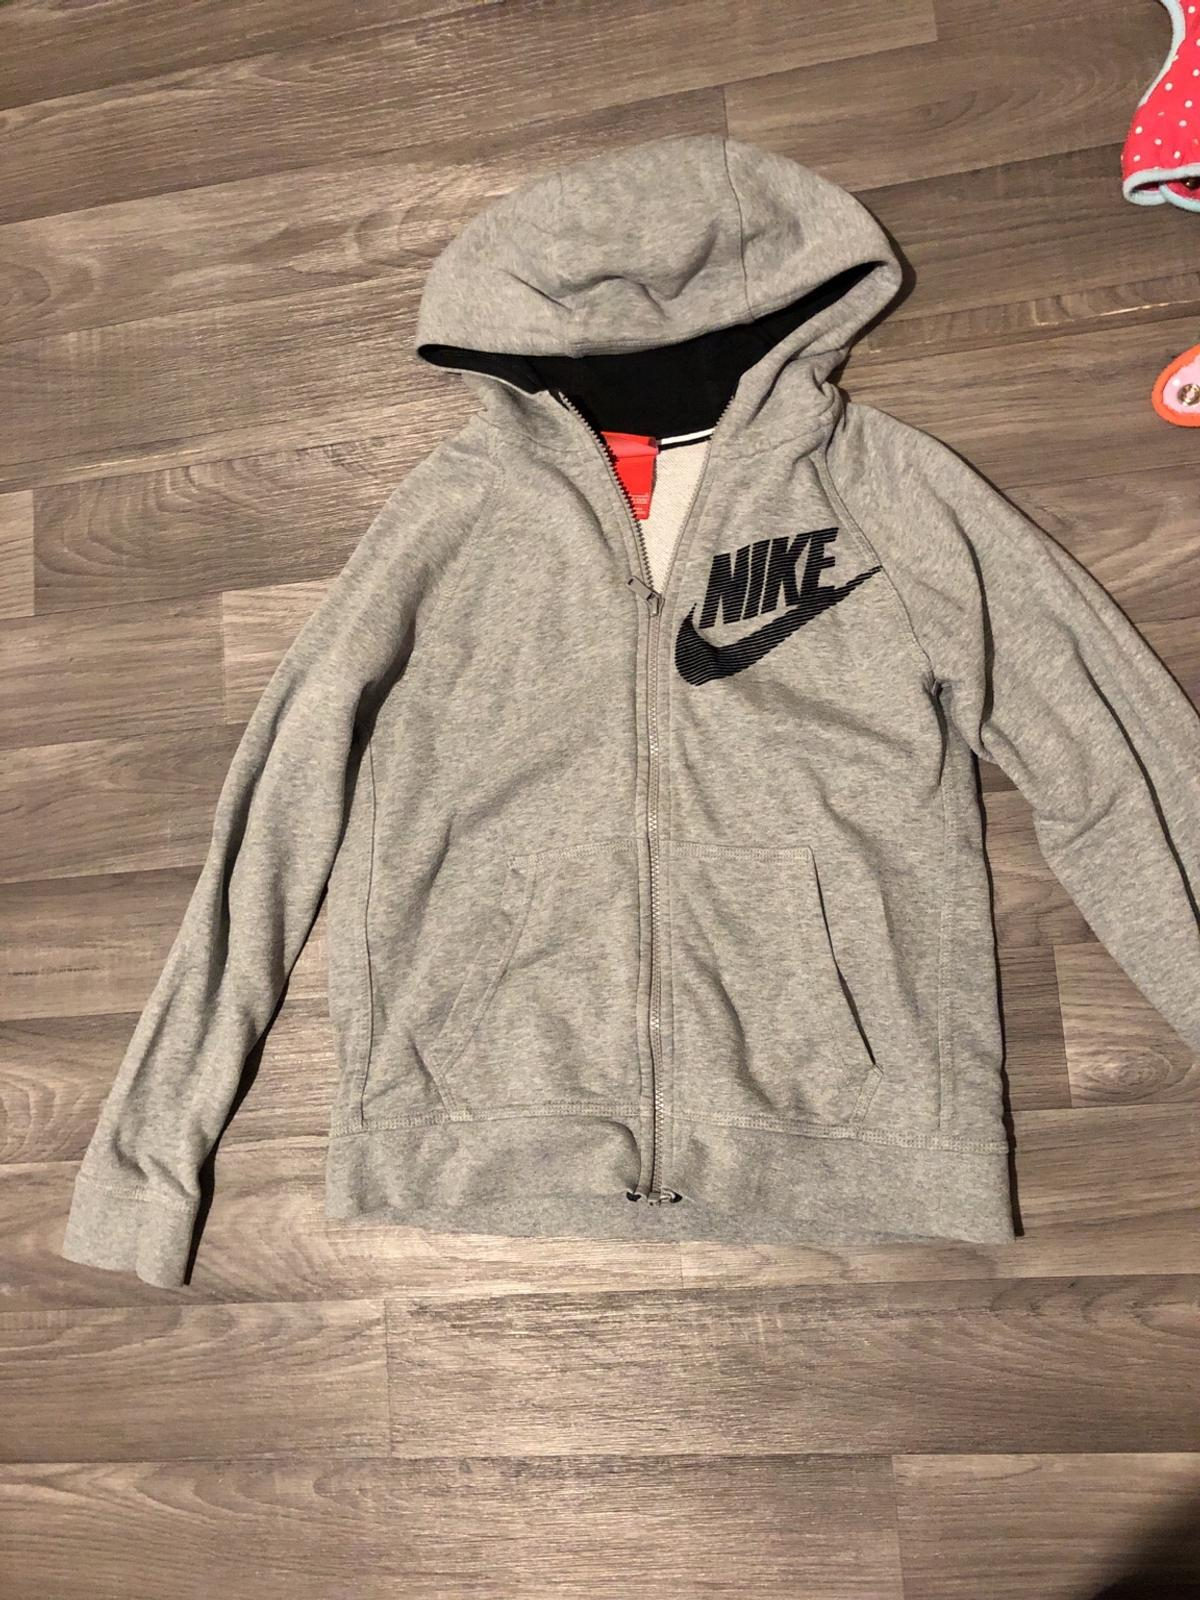 110446dab Women's Nike jacket size 8 in ST19 Staffordshire for £3.00 for sale ...